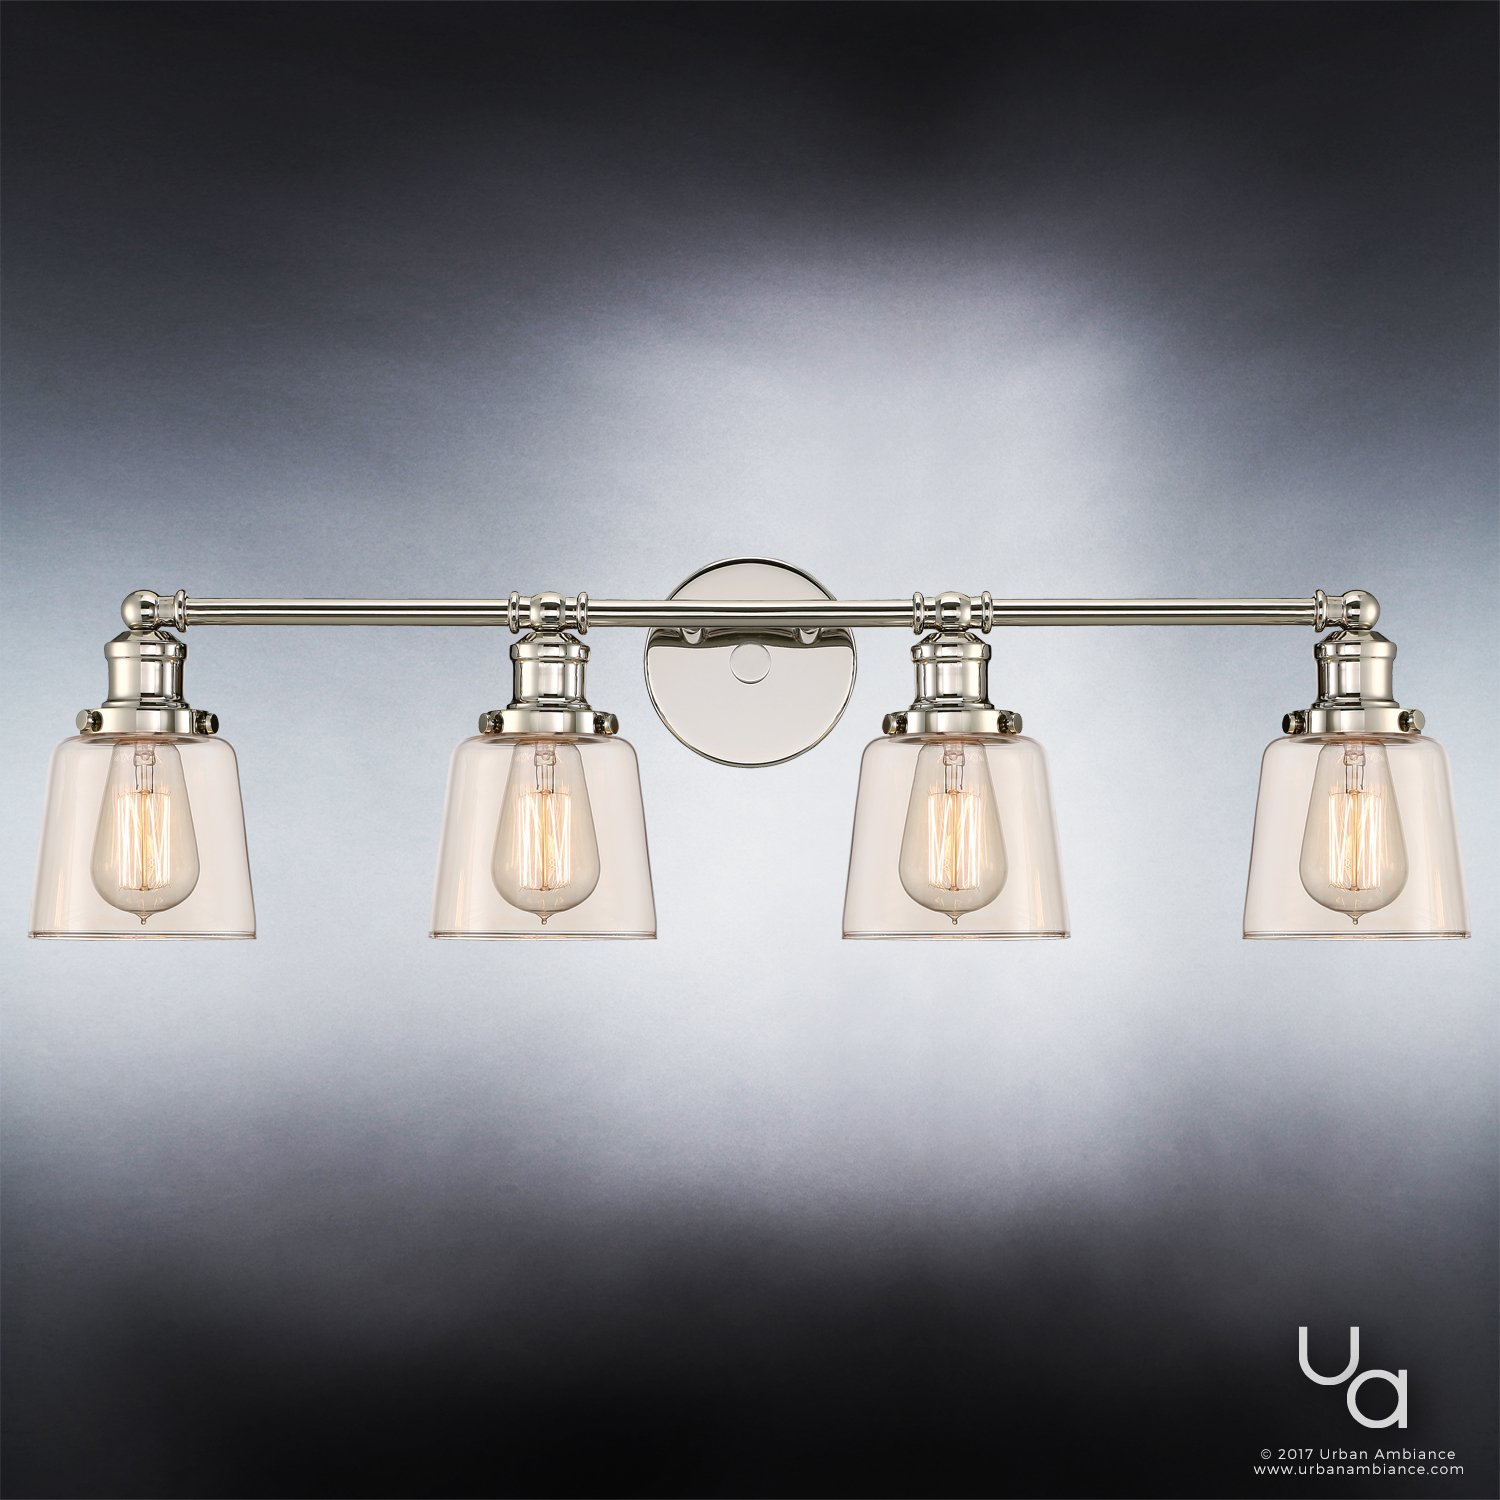 Luxury Industrial Chic Bathroom Vanity Light, Large Size: 9''H x 31.5''W, with Modern Style Elements, Nostalgic Design, Polished Nickel Finish and Light Champagne Glass, UQL2682 by Urban Ambiance by Urban Ambiance (Image #4)